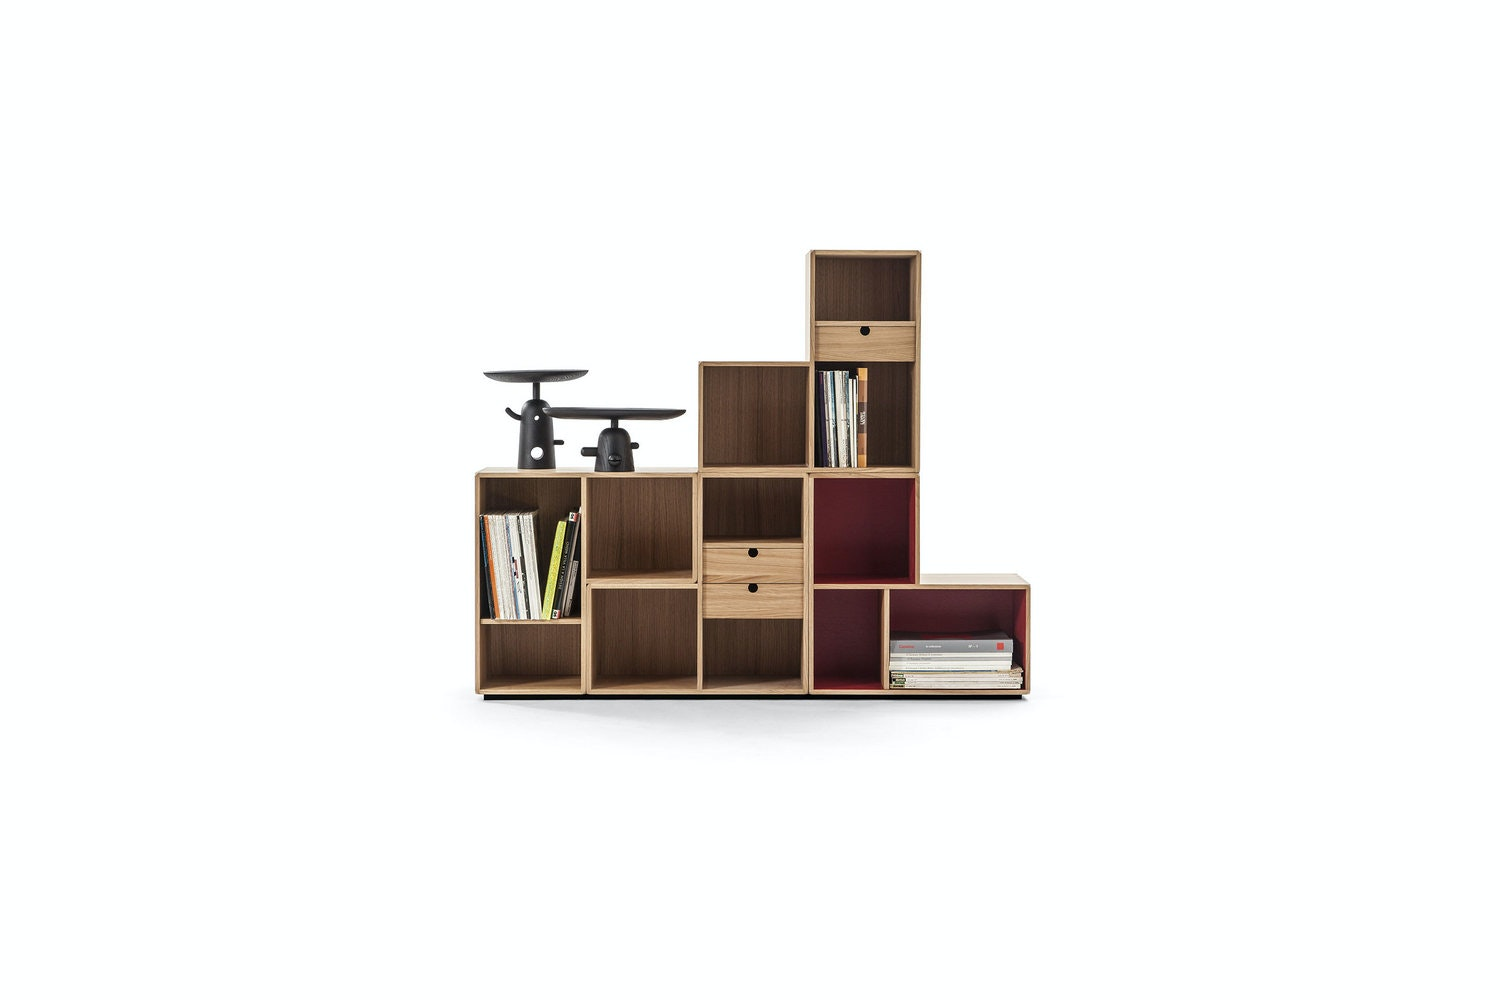 W54 Dada Modular Storage Unit by Kazuhide Takahama for Cassina